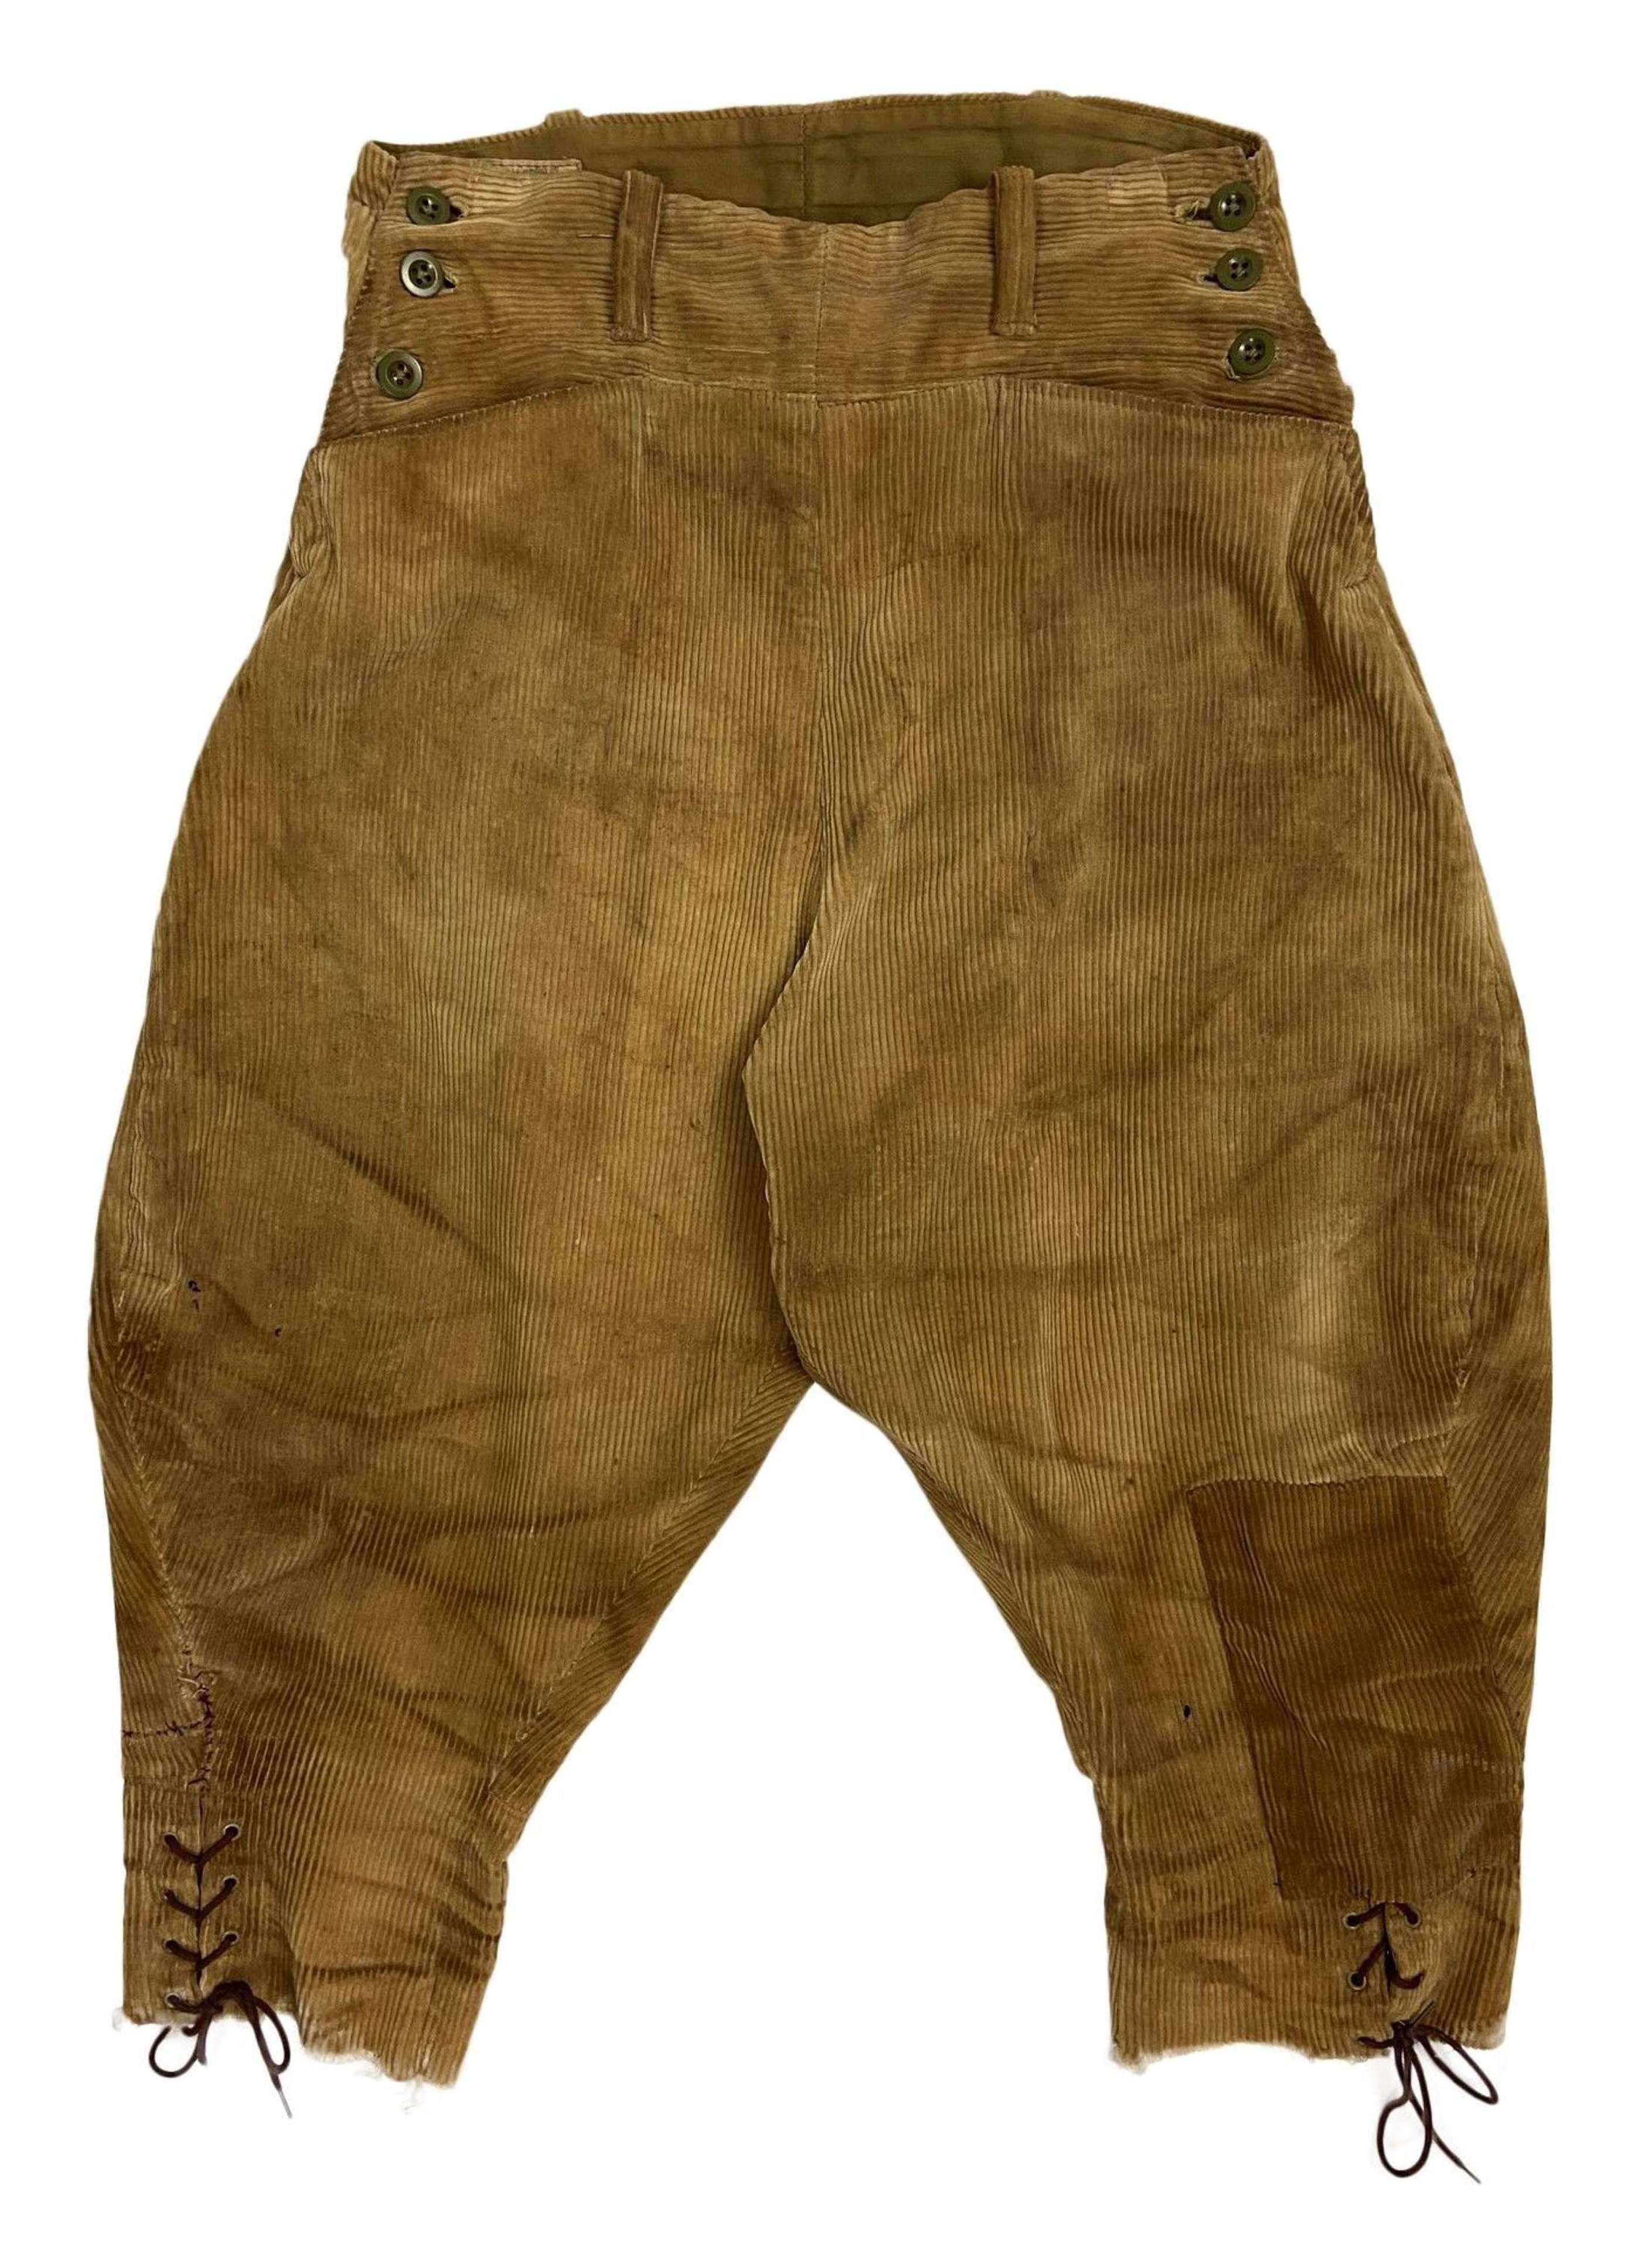 Original 1945 Dated Women's Land Army Breeches - Size 4